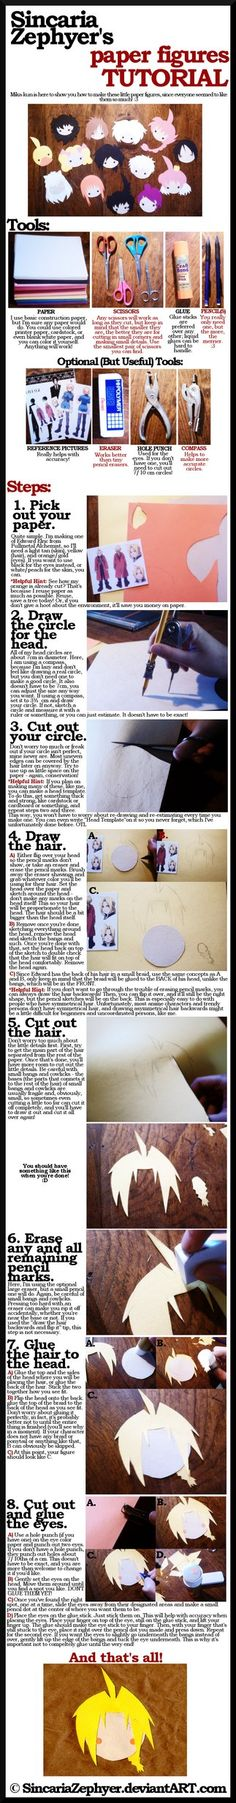 tutorial  paper figures  by sincariazephyer d32vnkw Kawaii Paper Anime/Manga heads Tutorial